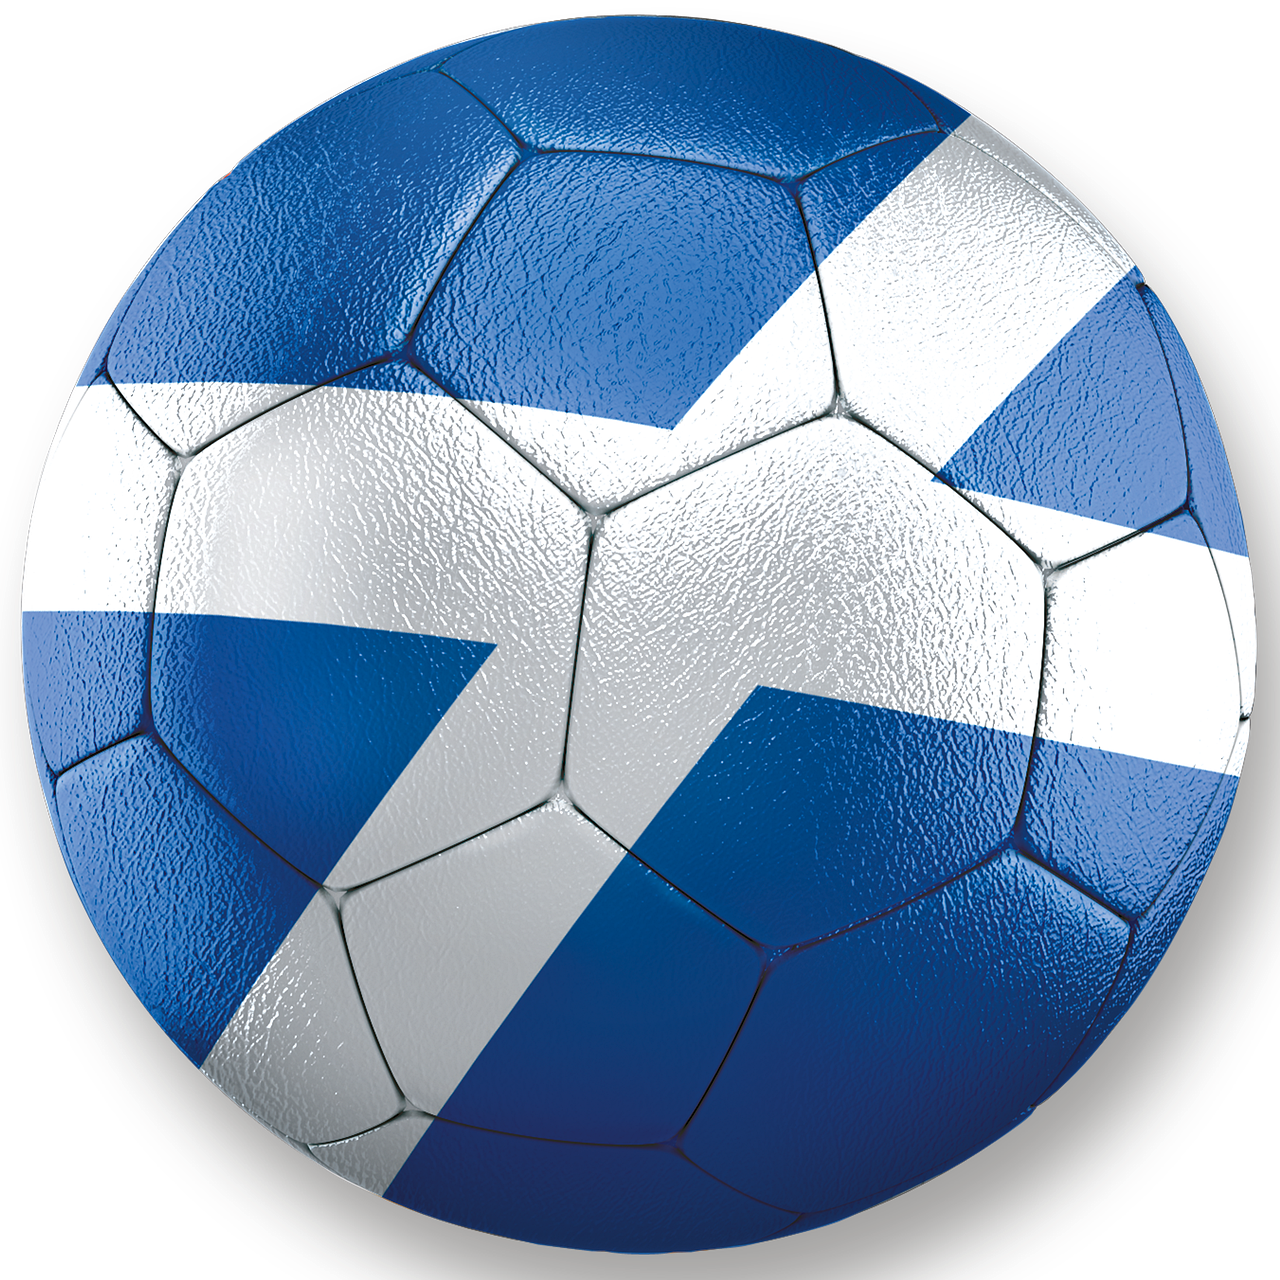 A football with a Scottish flag